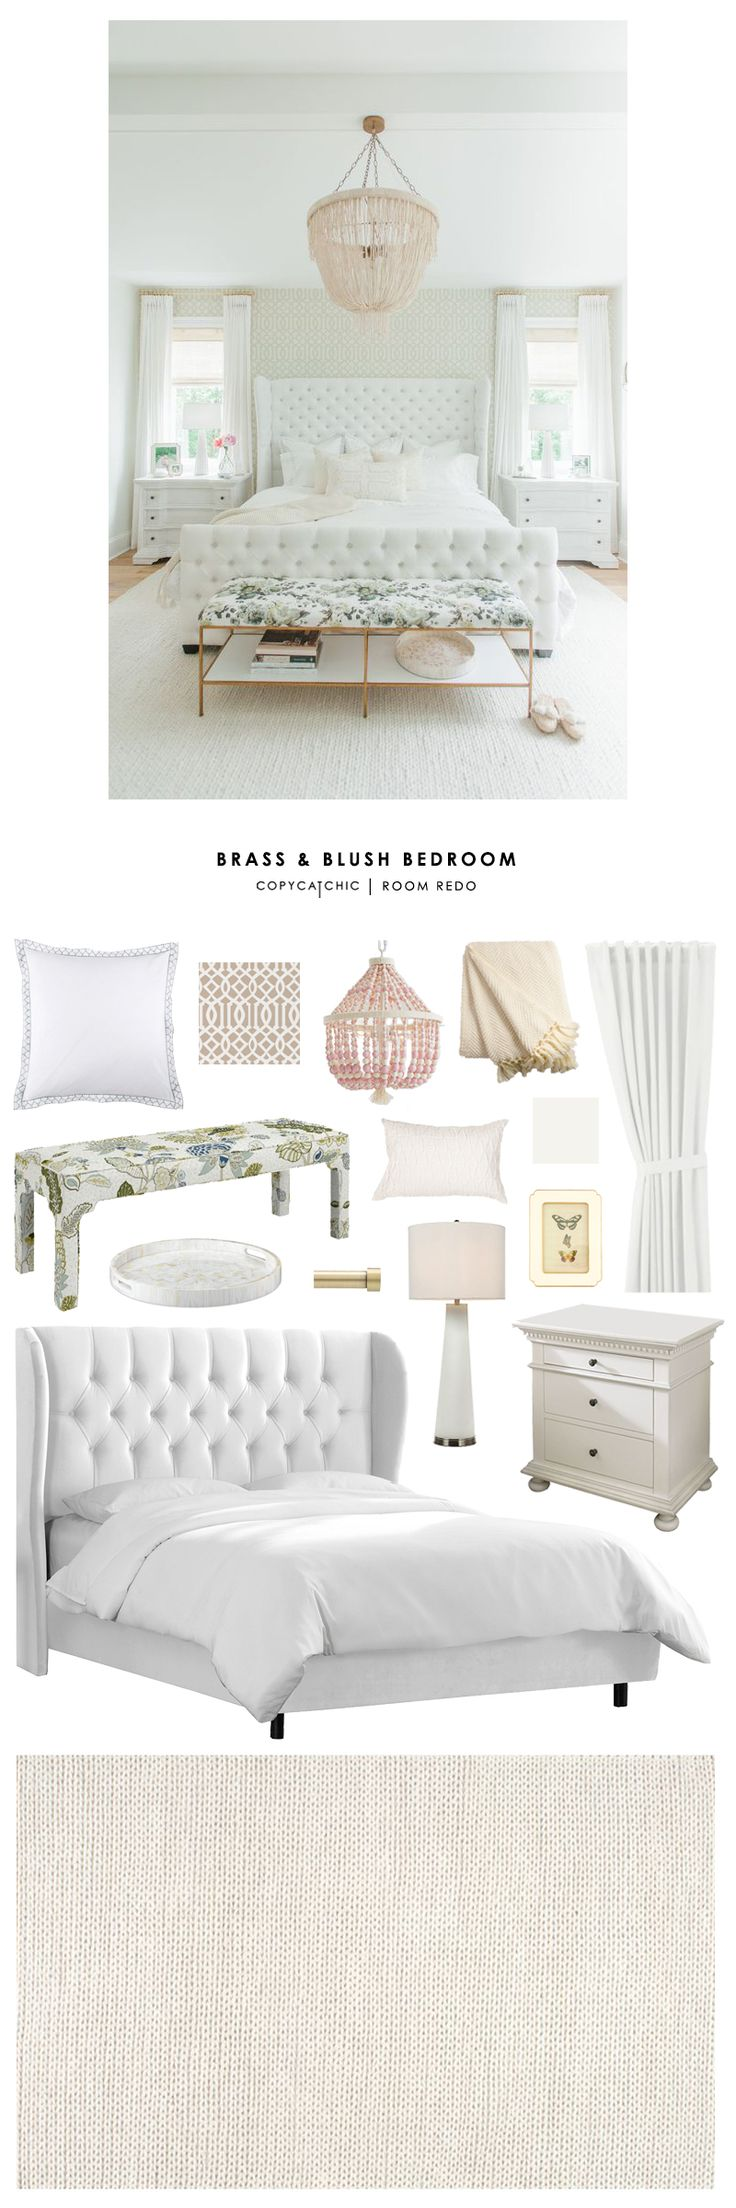 Copy Cat Chic Room Redo | Brass and Blush Bedroom | Copy Cat Chic | Bloglovin'